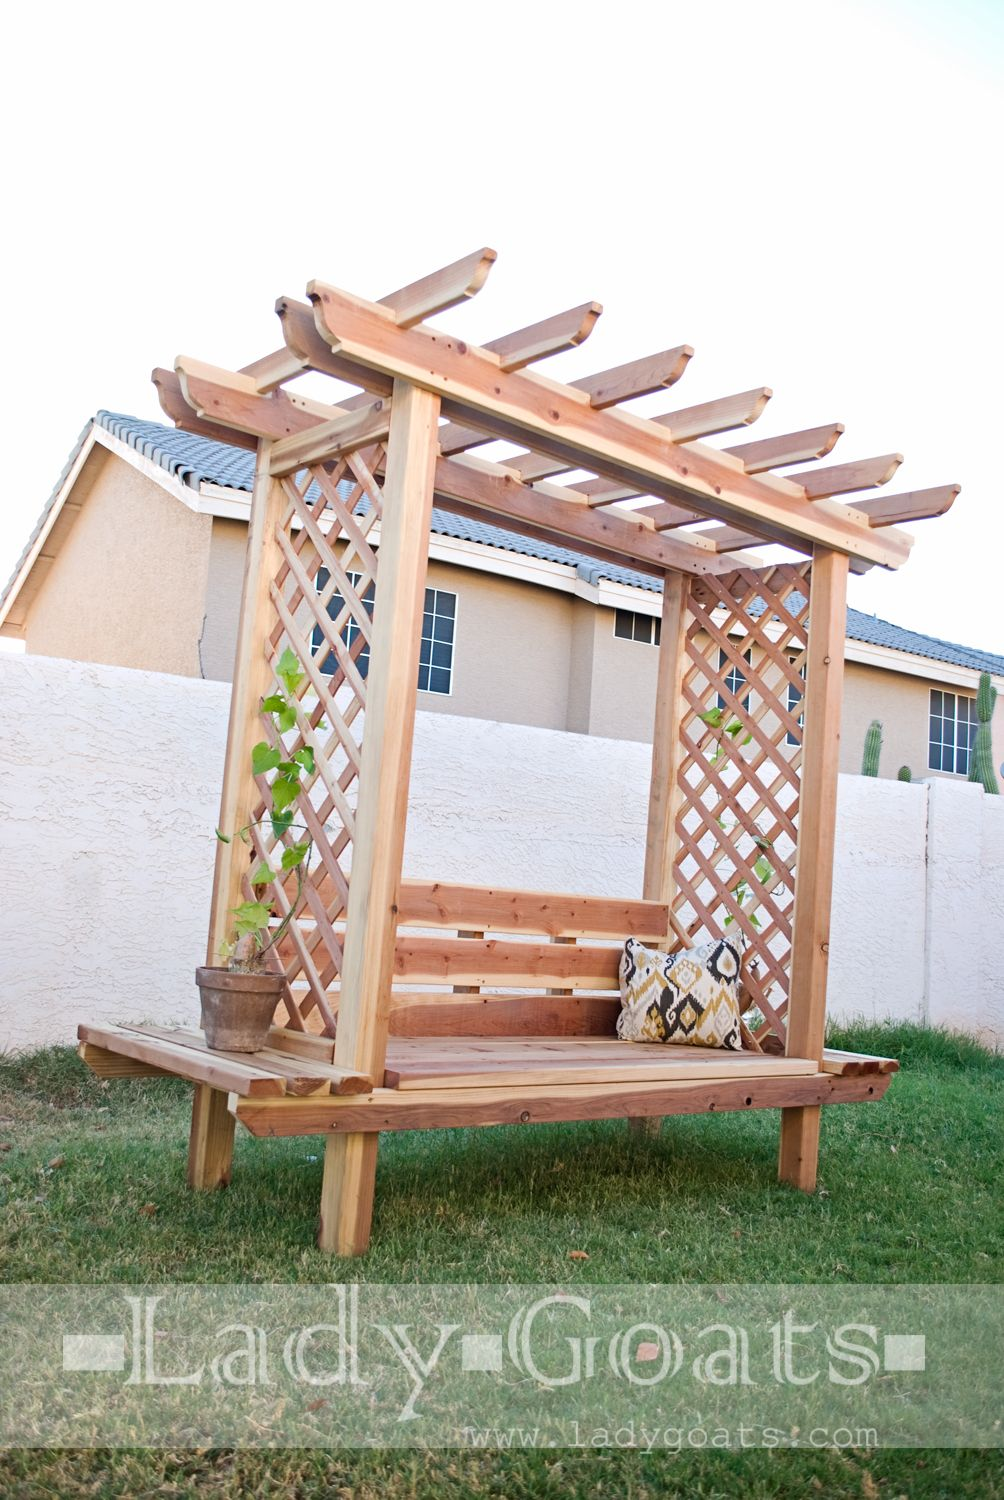 Awe Inspiring 22 Diy Garden Bench Ideas Free Plans For Outdoor Benches Andrewgaddart Wooden Chair Designs For Living Room Andrewgaddartcom